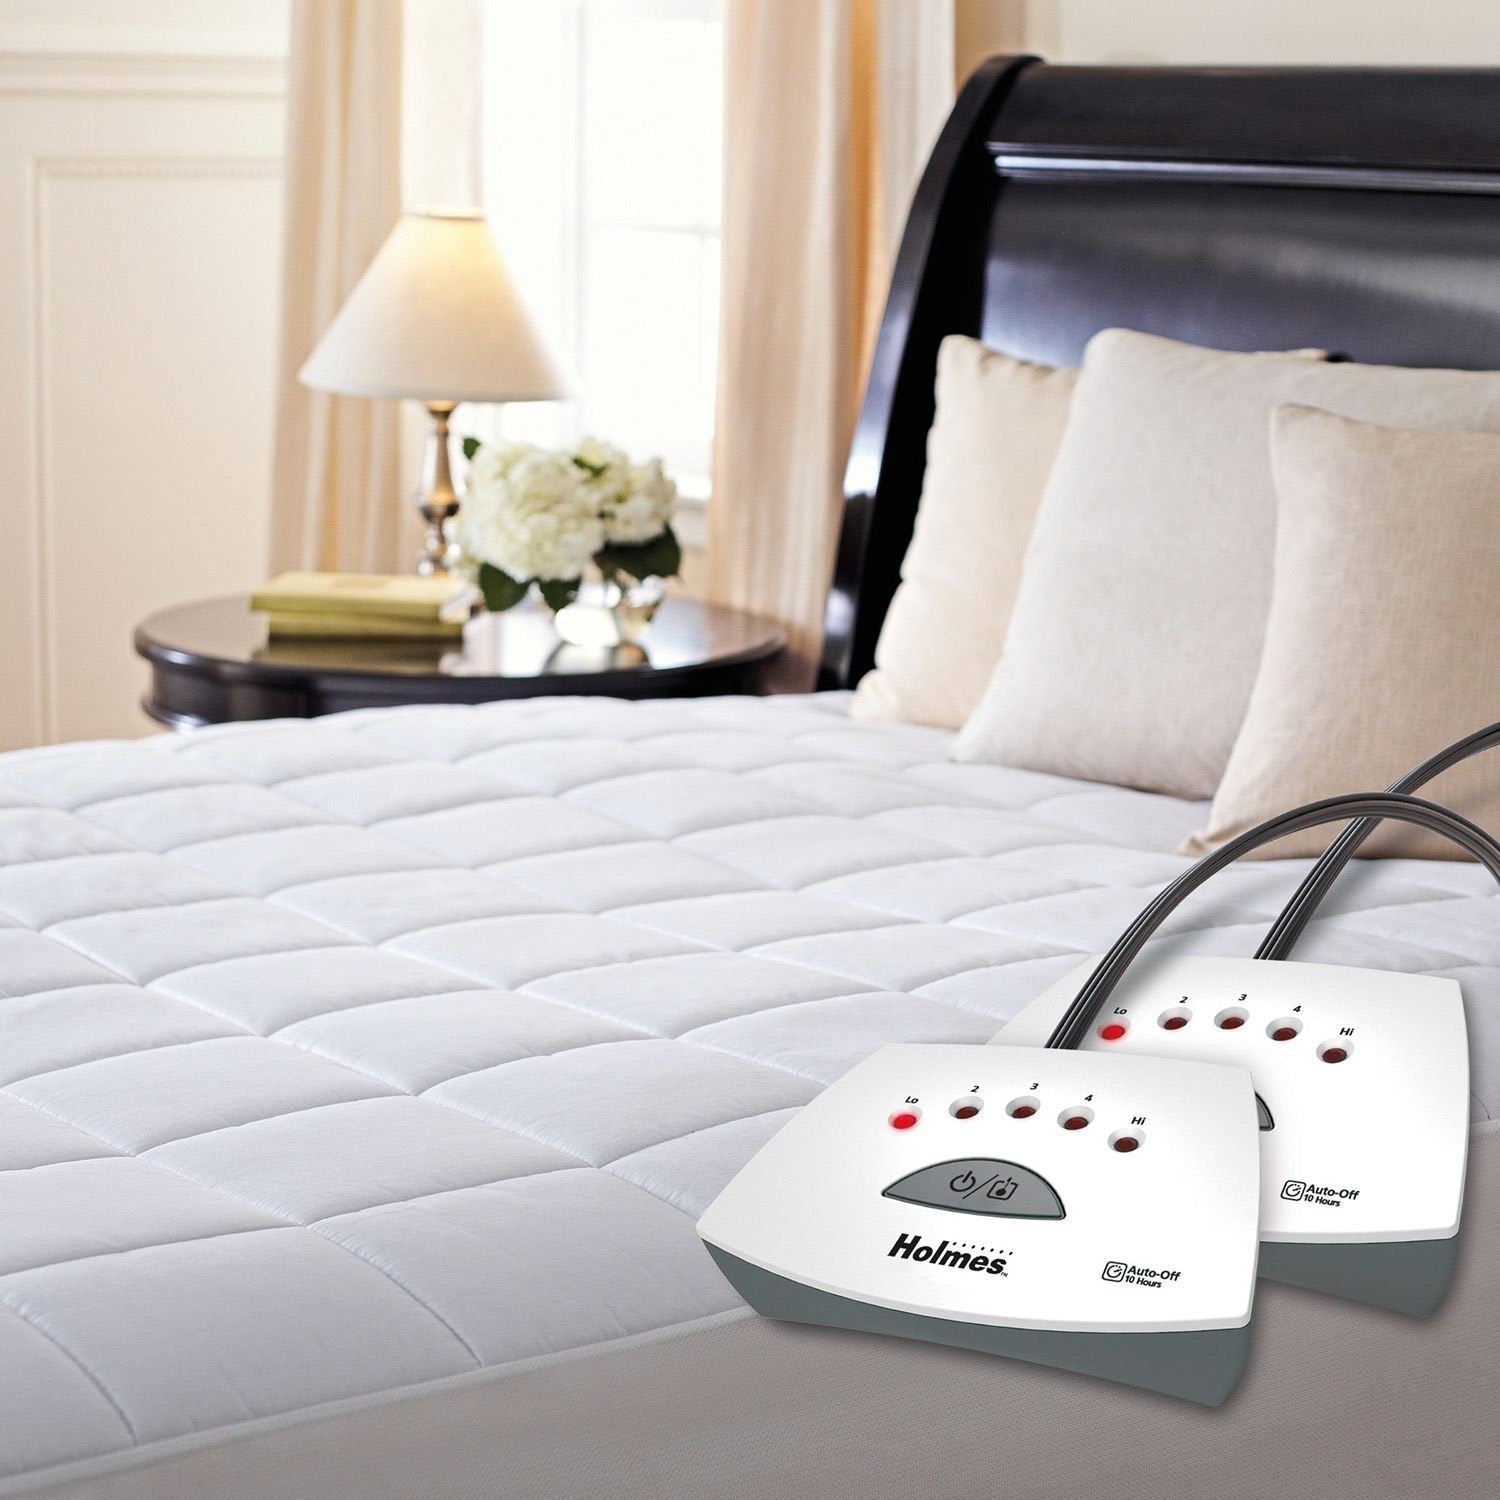 Holmes Quilted Heated Mattress Pad (King) 503771